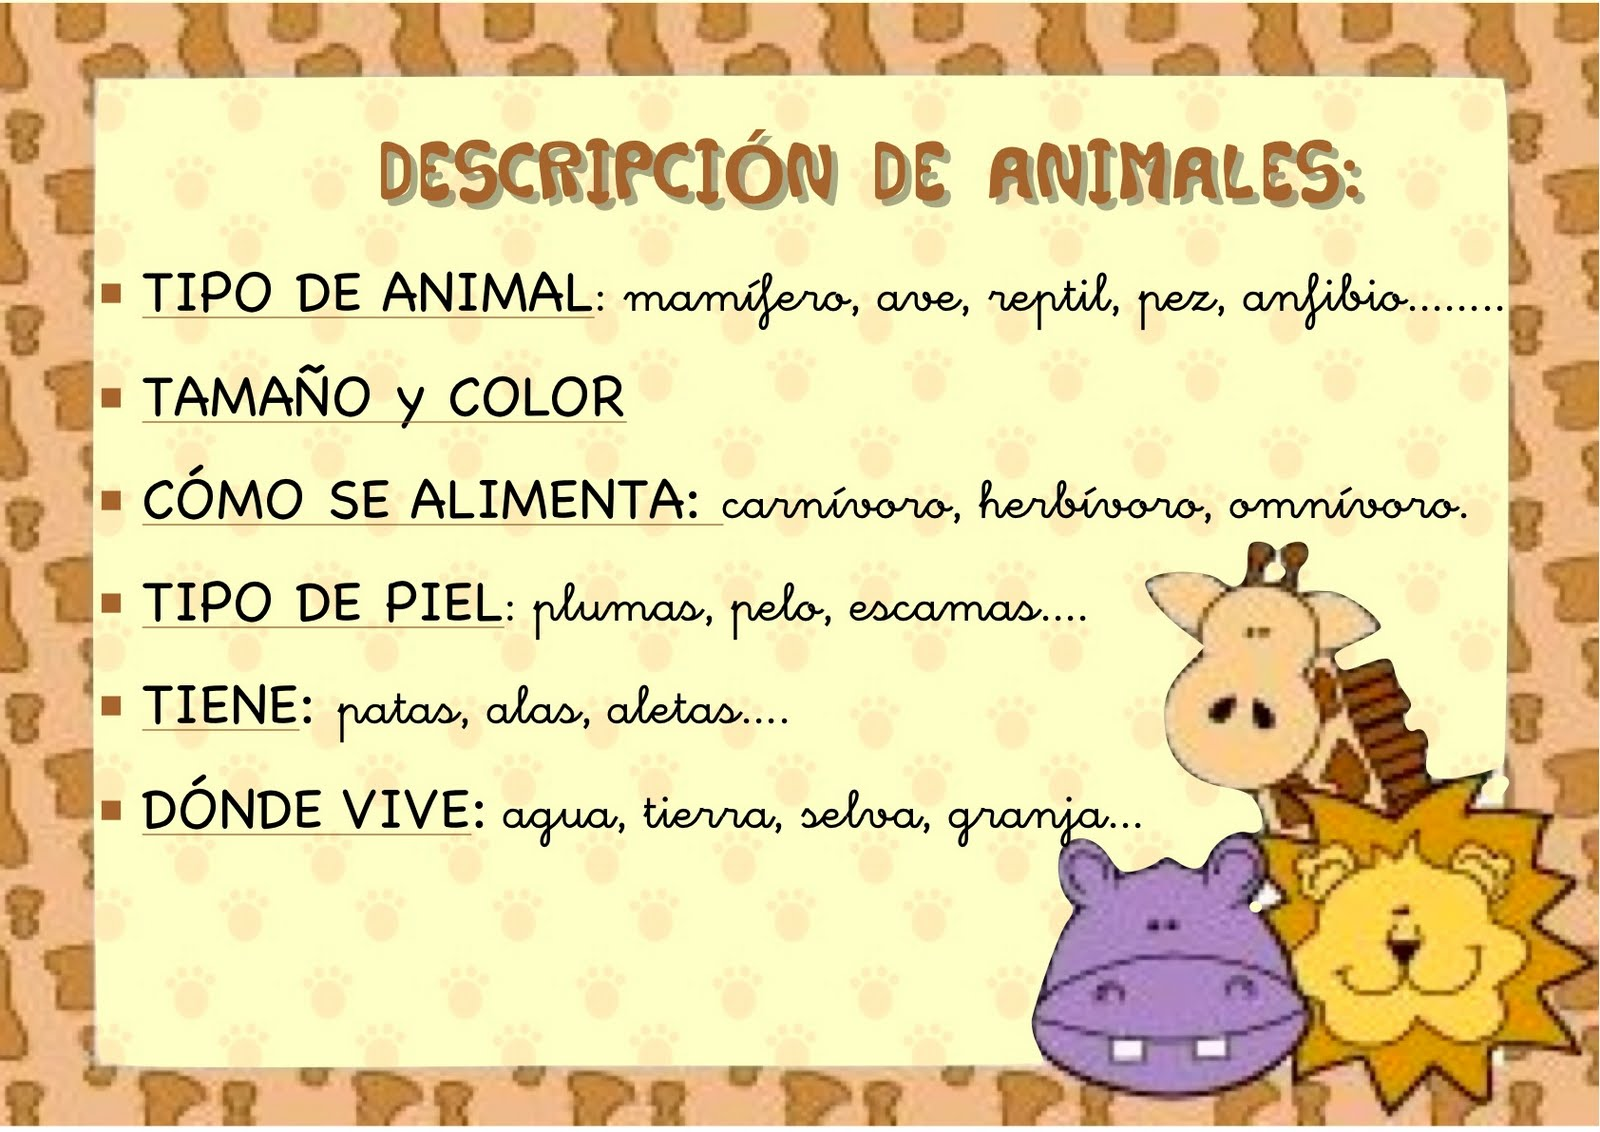 Describir animales